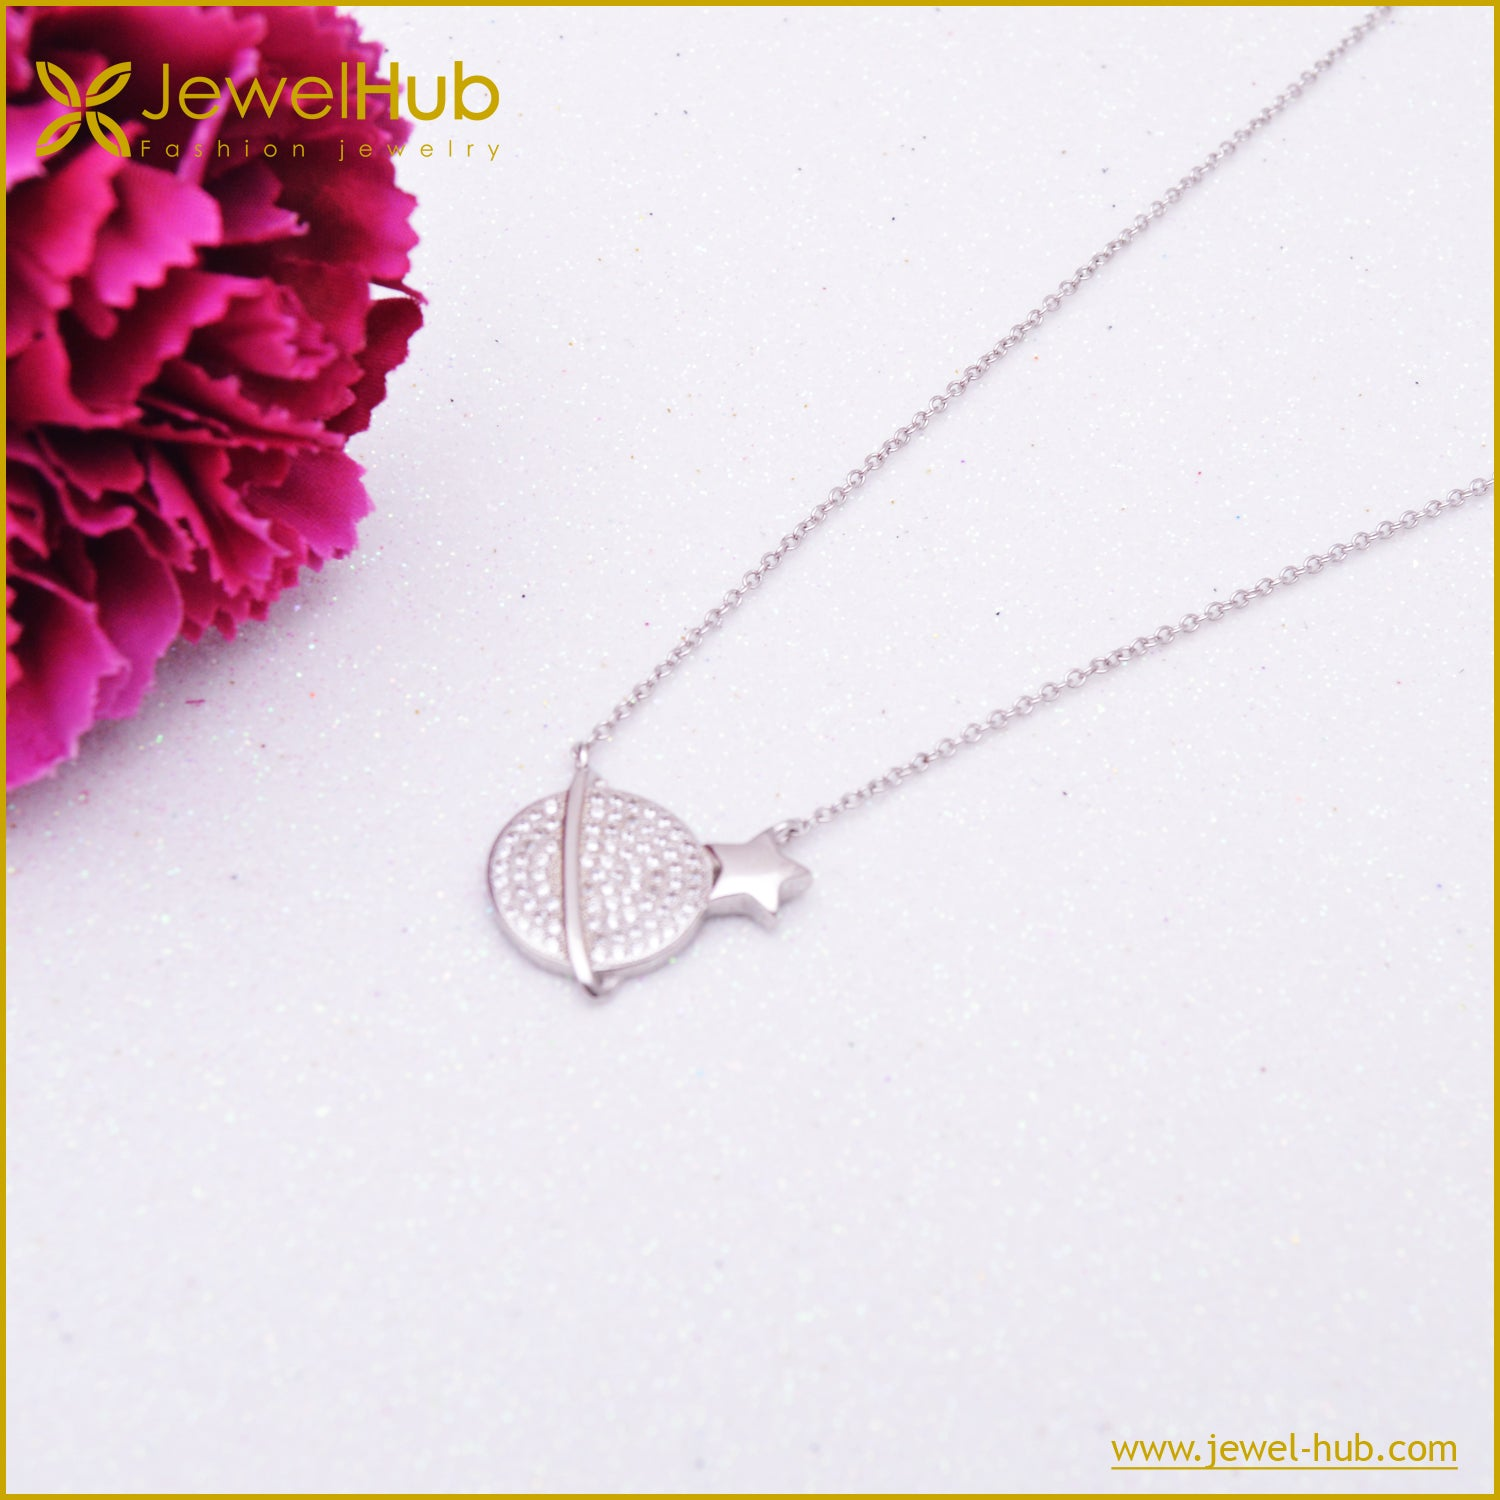 Wonderful Silver Necklace